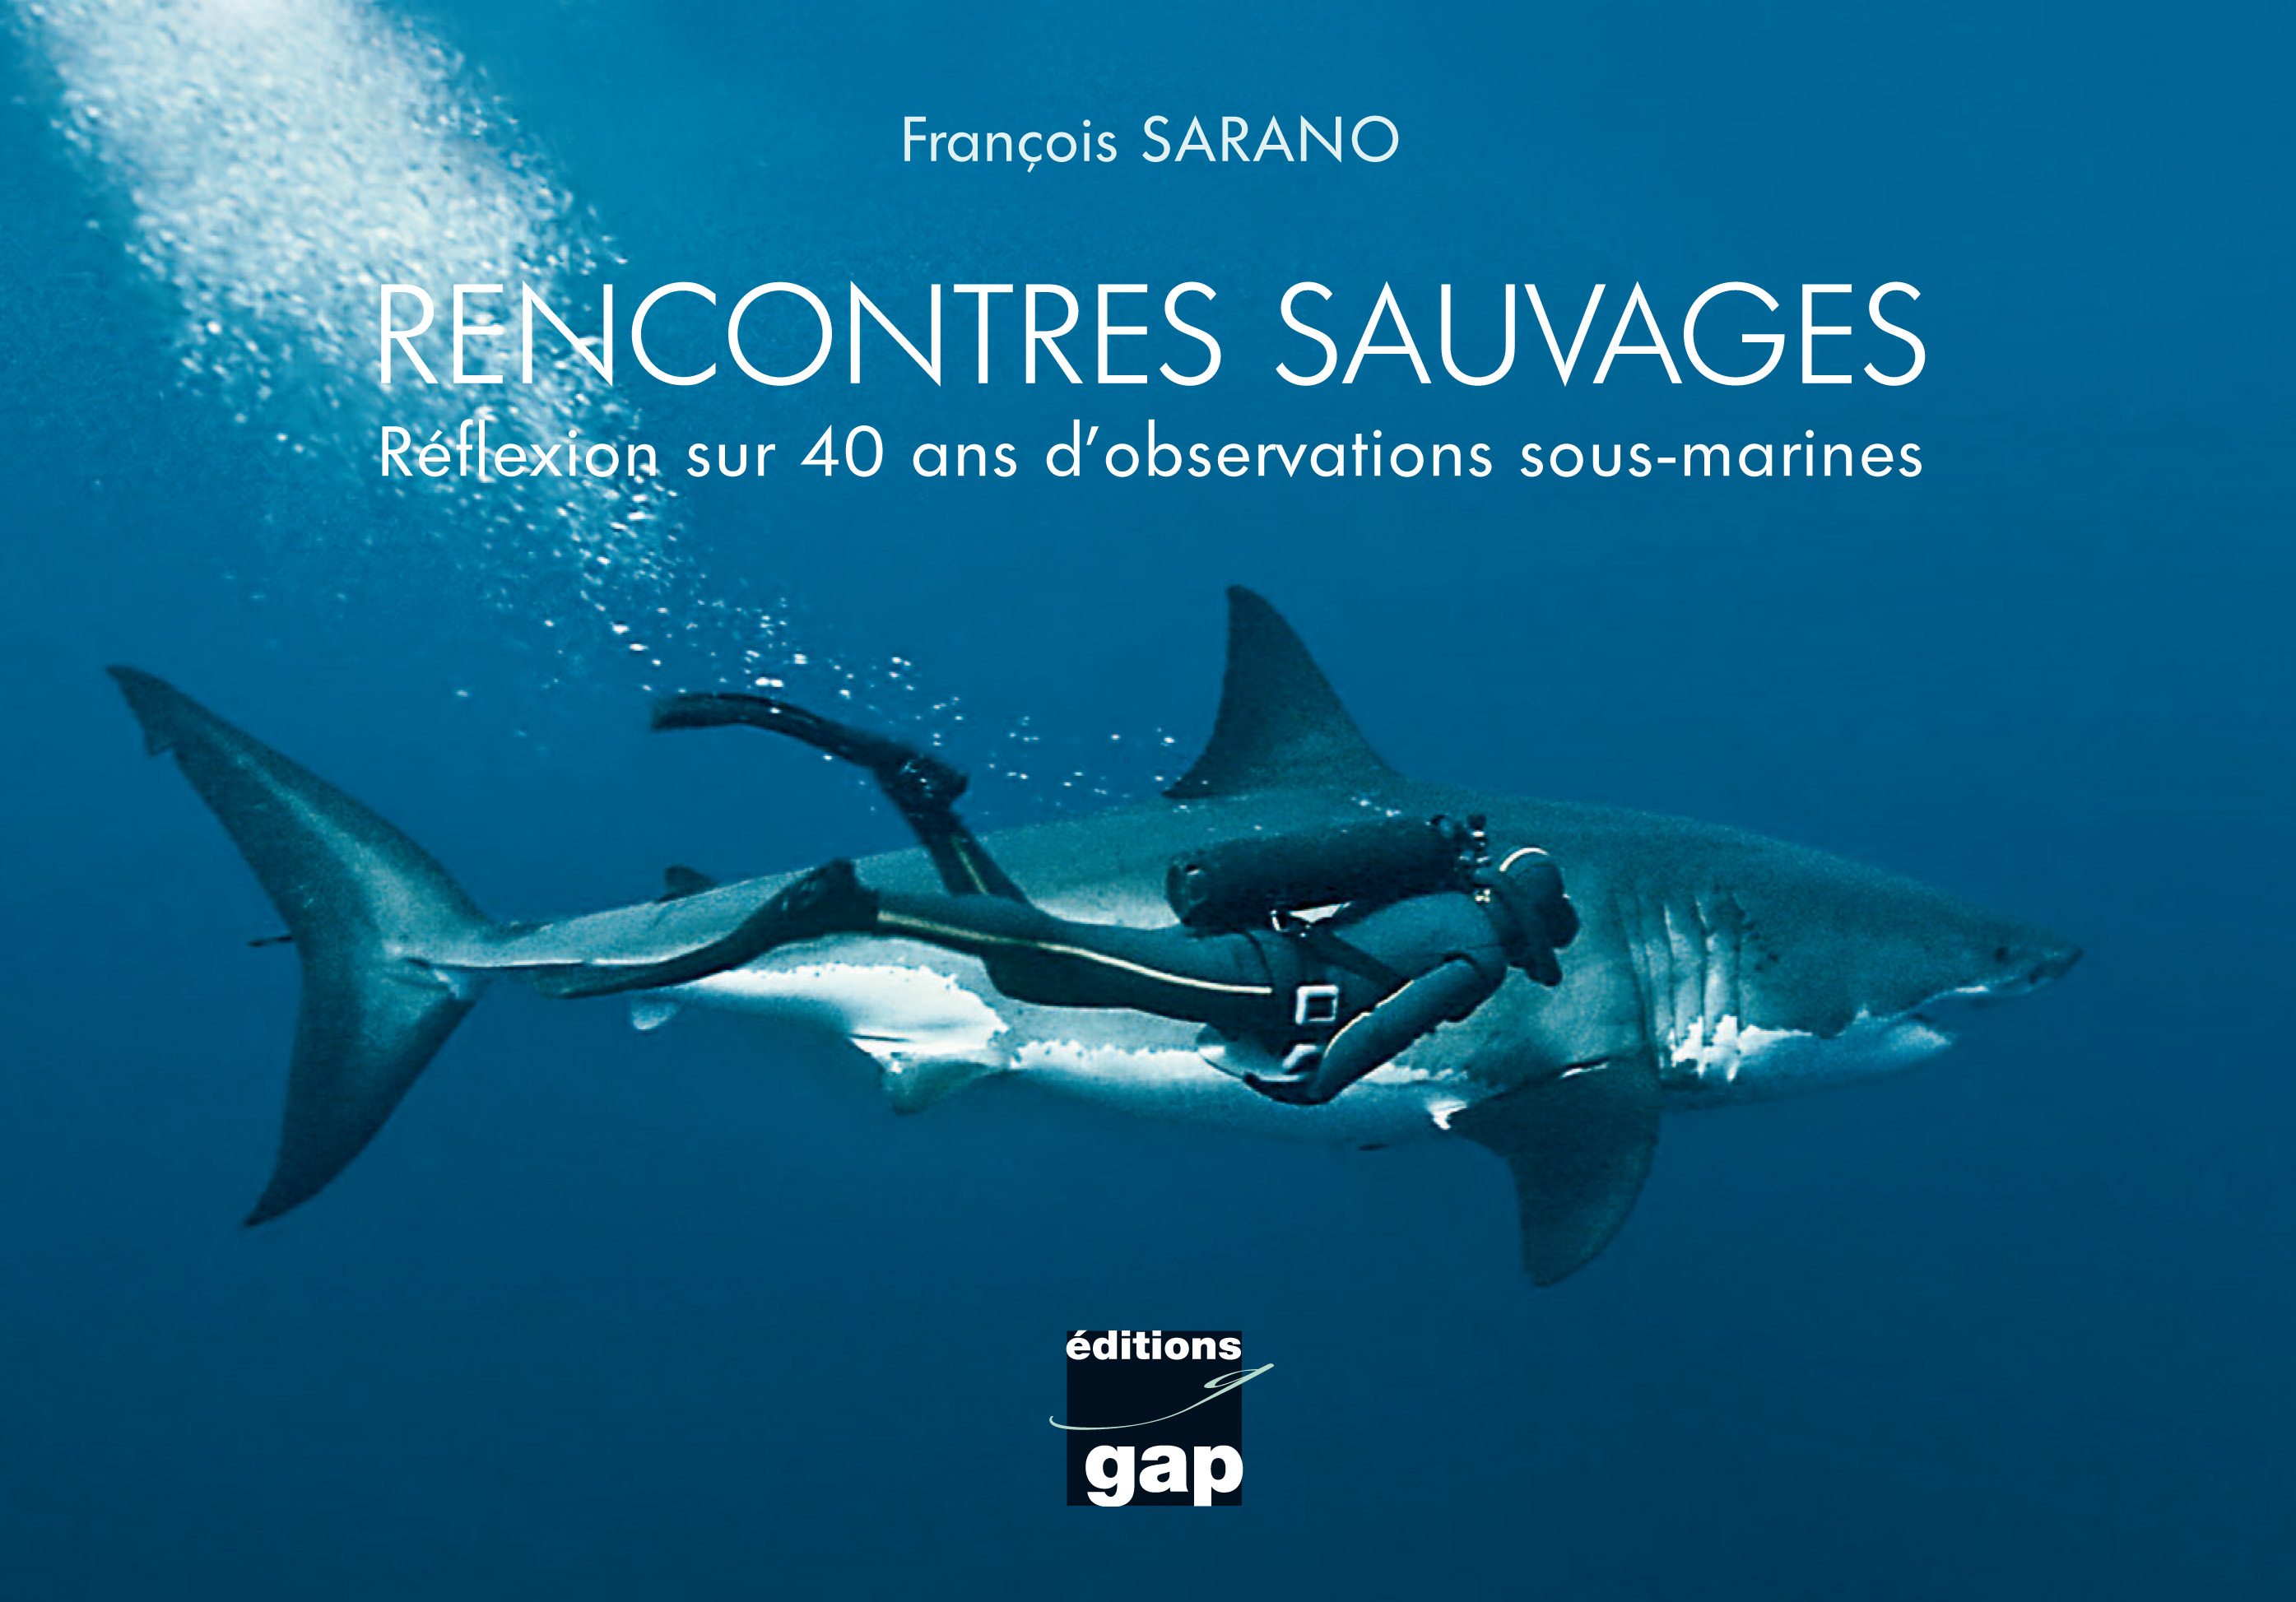 Rencontres sauvages francois sarano